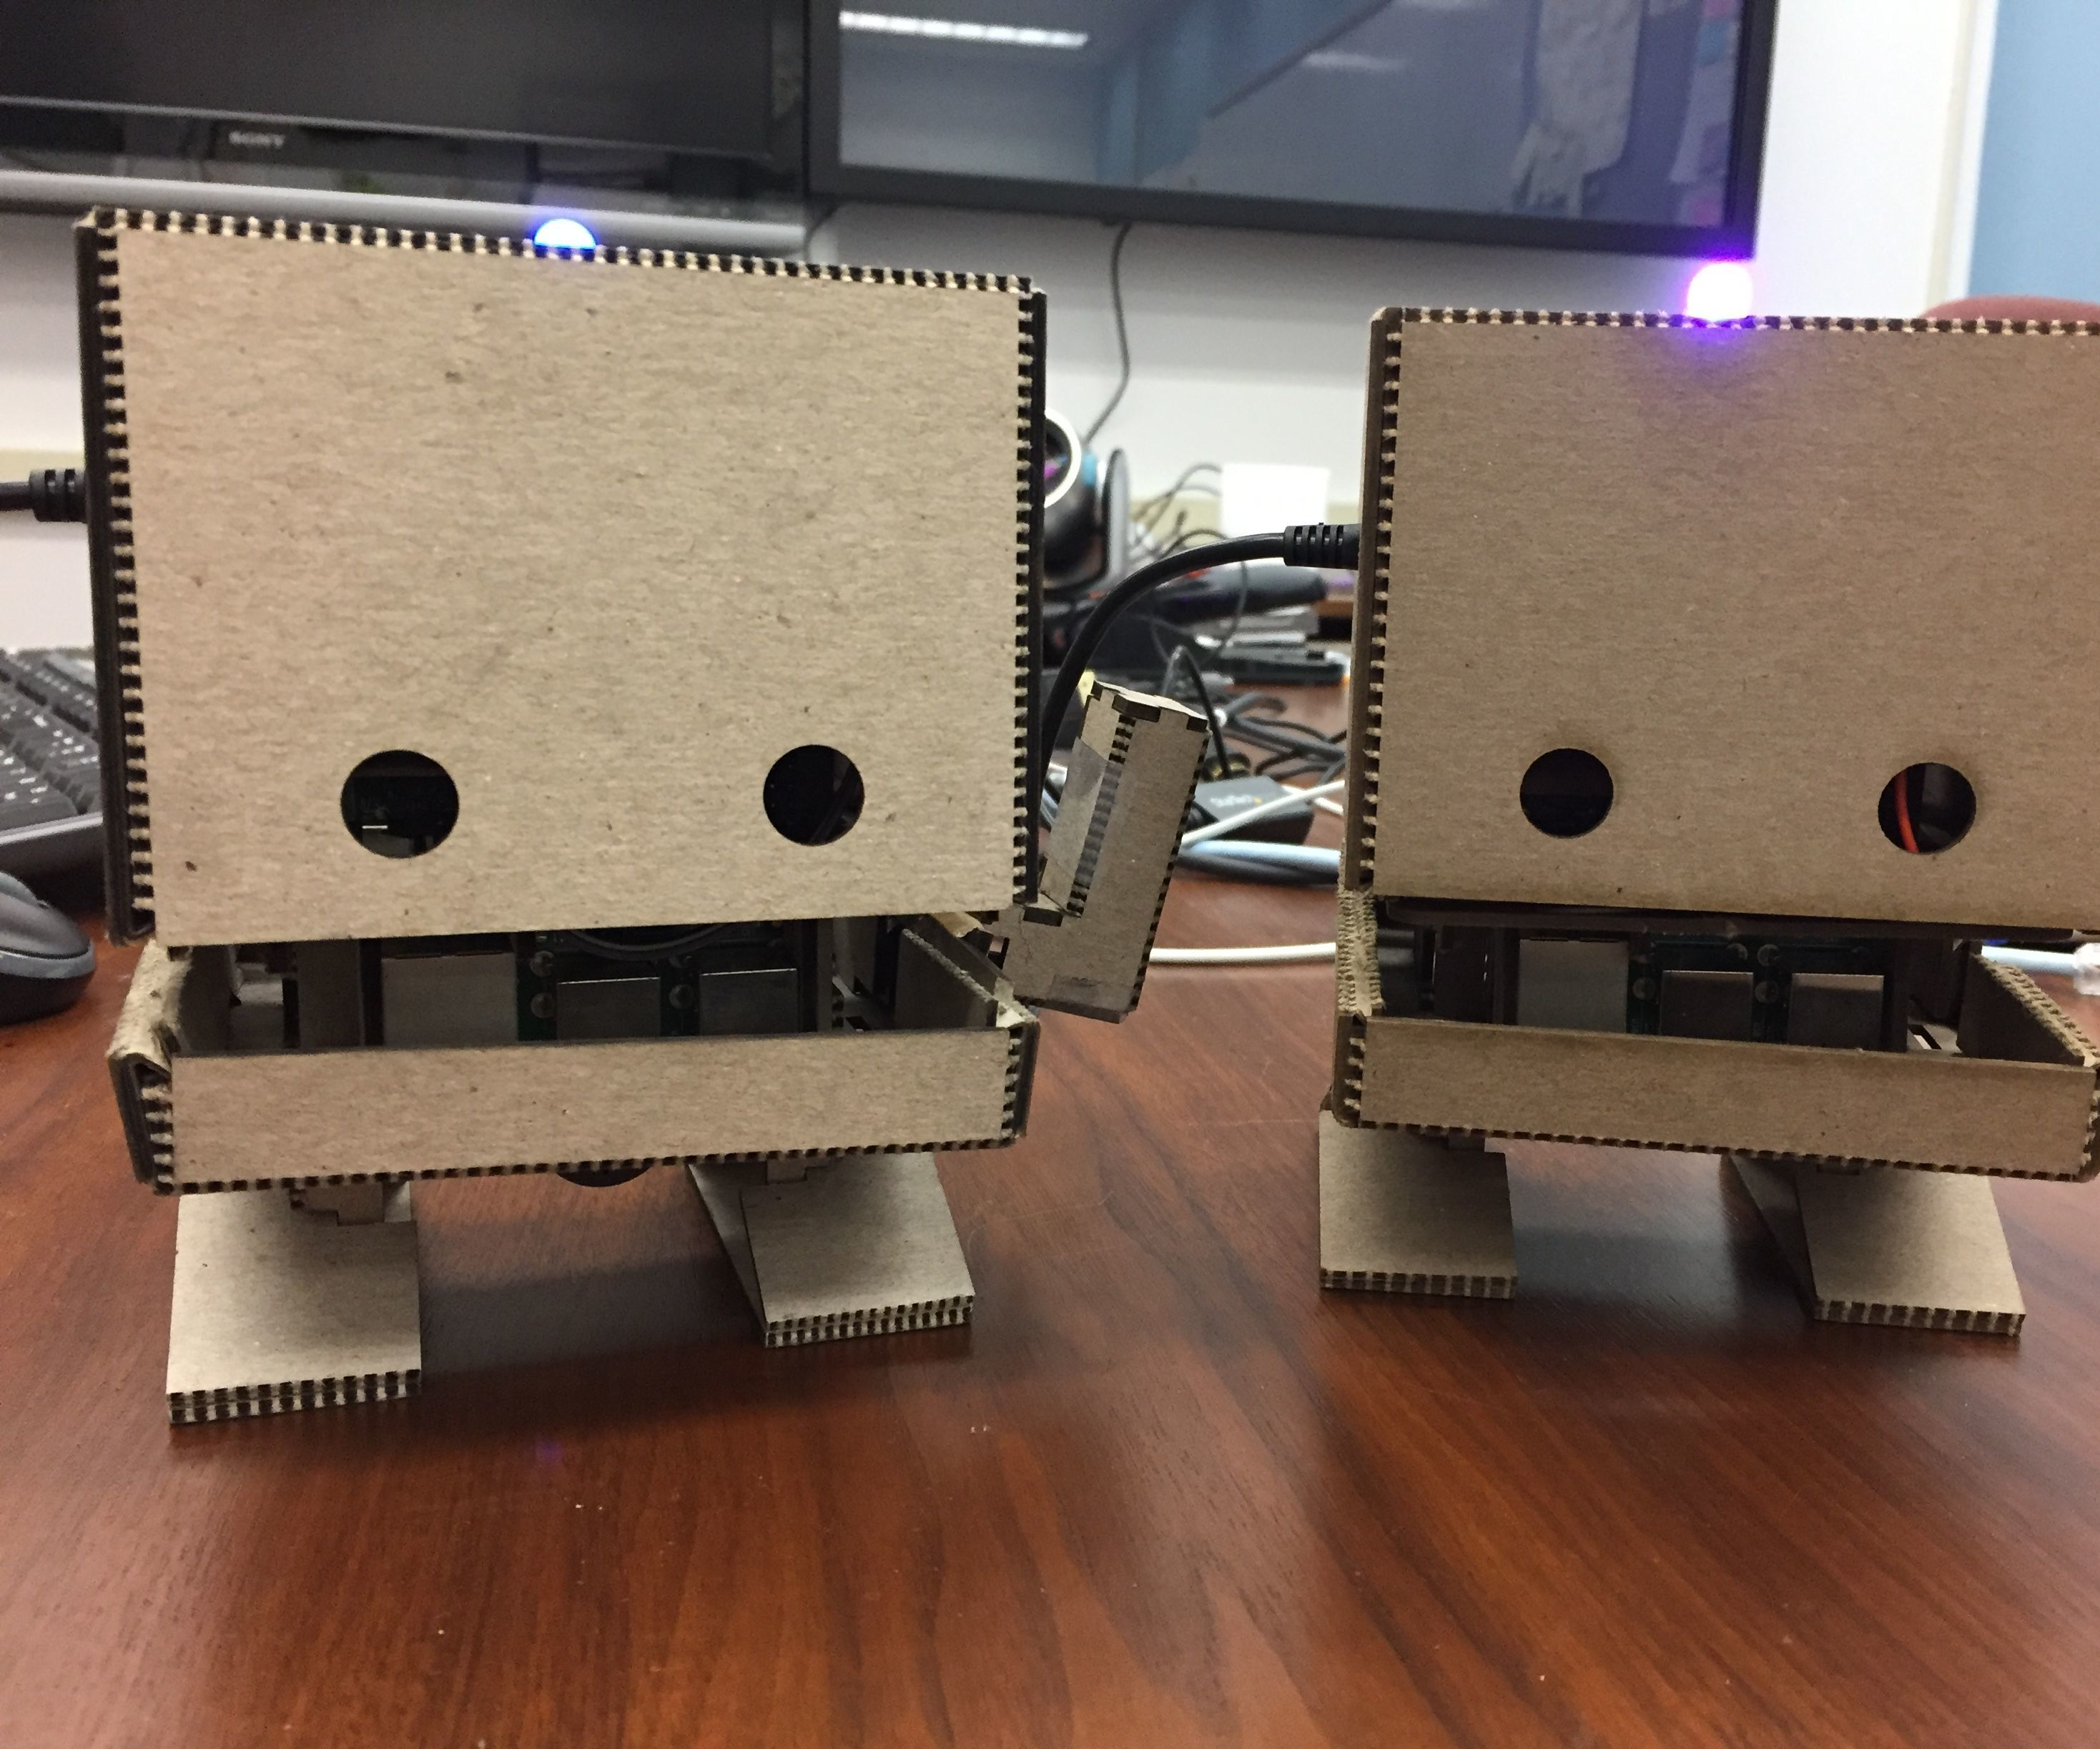 Make your robot respond to emotions using Watson